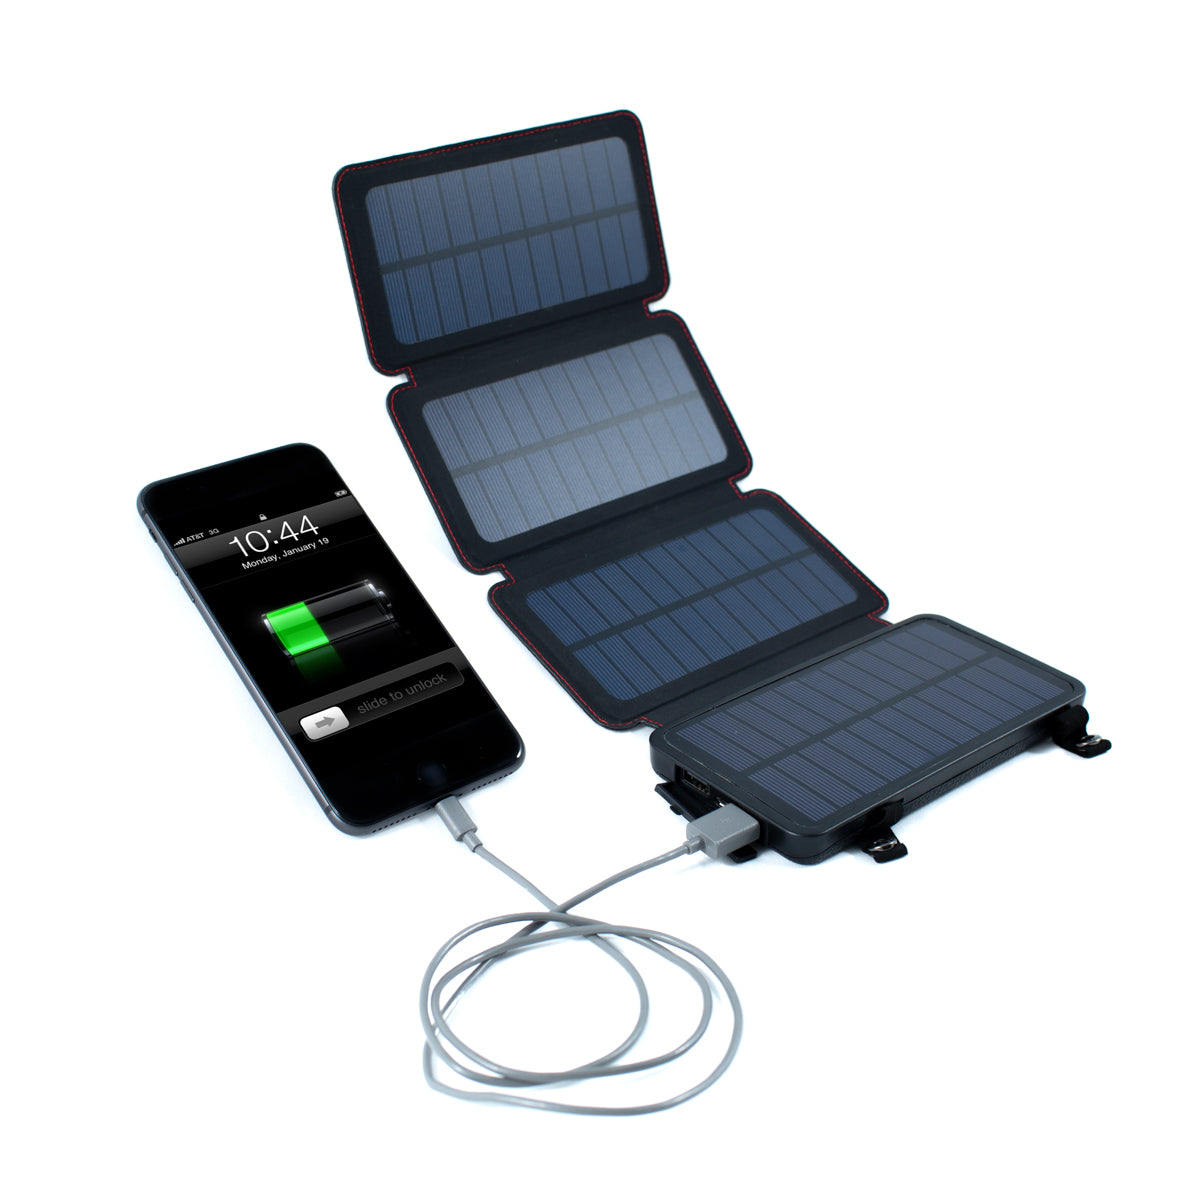 Quadrapro Solar Power Bank With Wireless & Dual USB Charging By Frog & Co By Frog & Co.